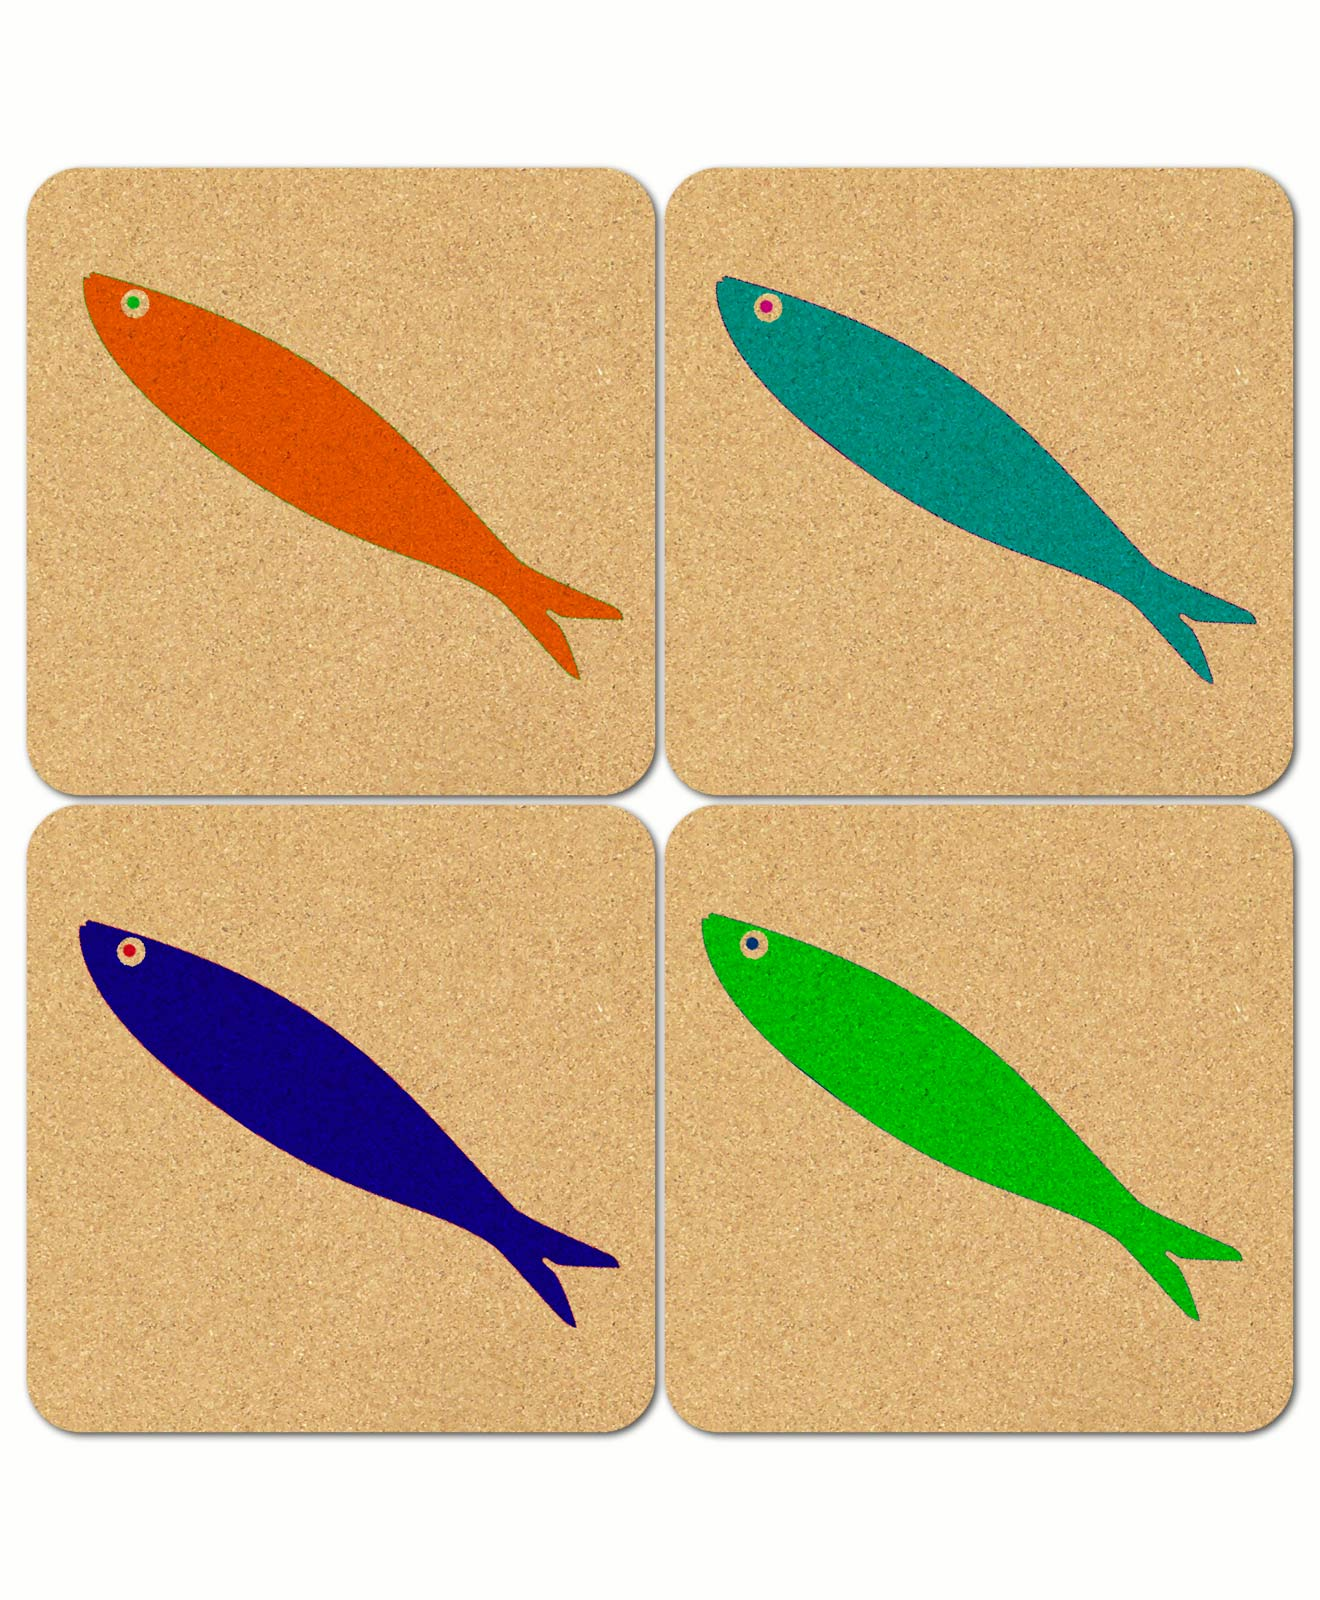 Lonely Sardine Cork Coasters